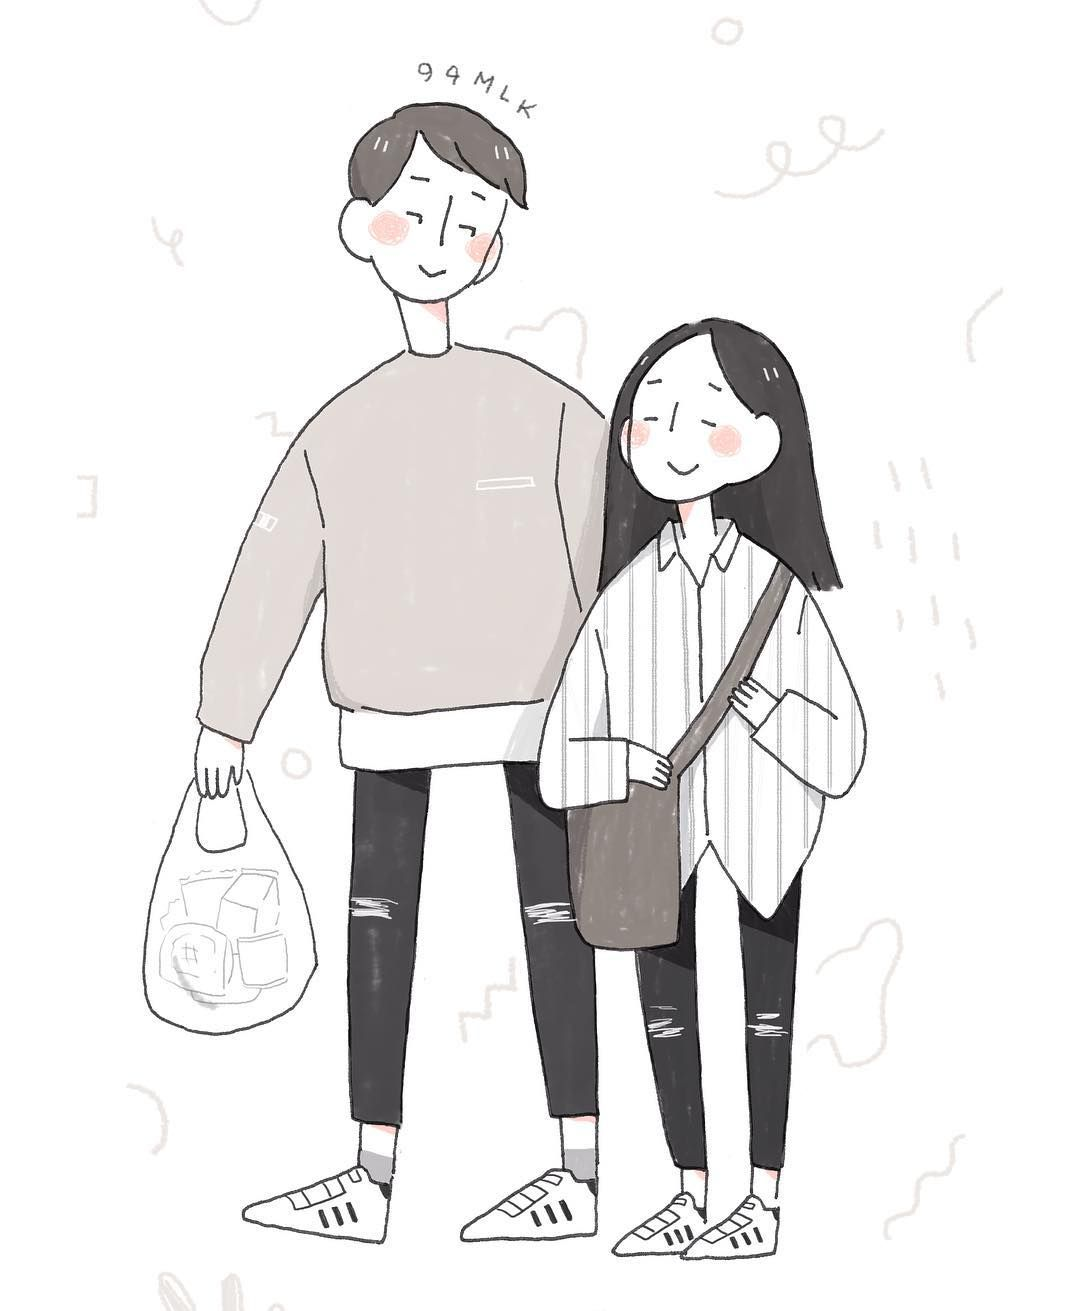 Japanese illustration illustration art drawing art drawing ideas human drawing couple art doodle ideas anime couples fashion illustrations